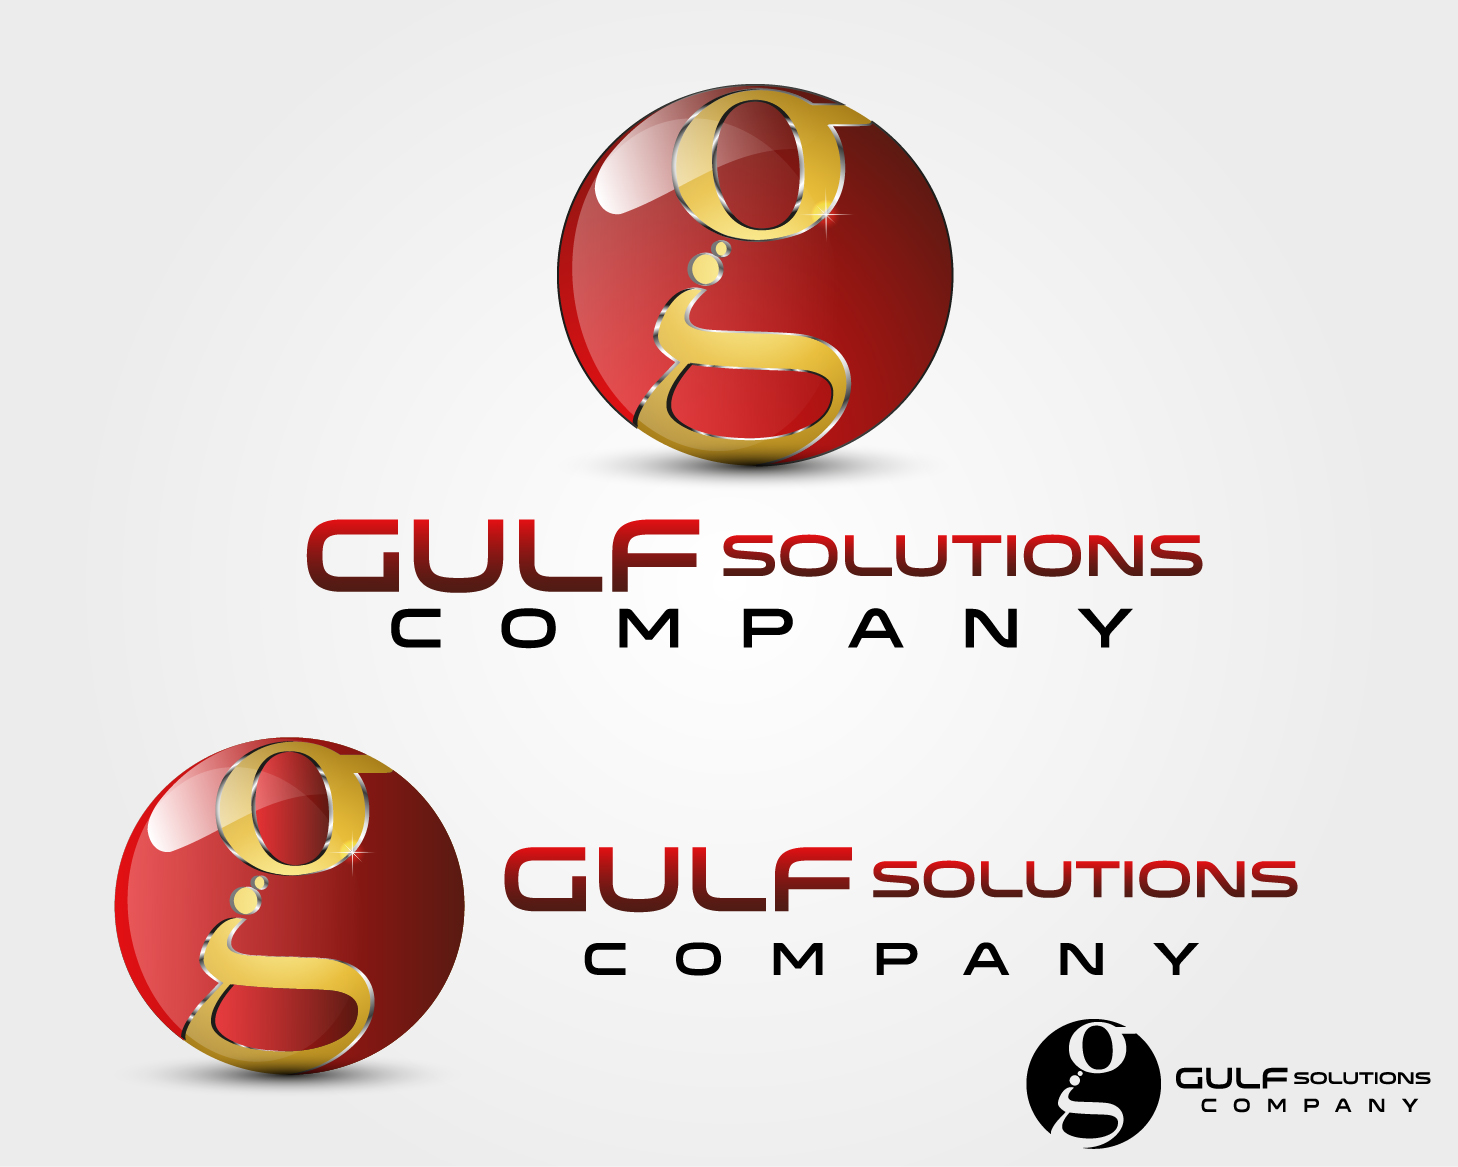 Logo Design by VENTSISLAV KOVACHEV - Entry No. 80 in the Logo Design Contest New Logo Design for Gulf solutions company.